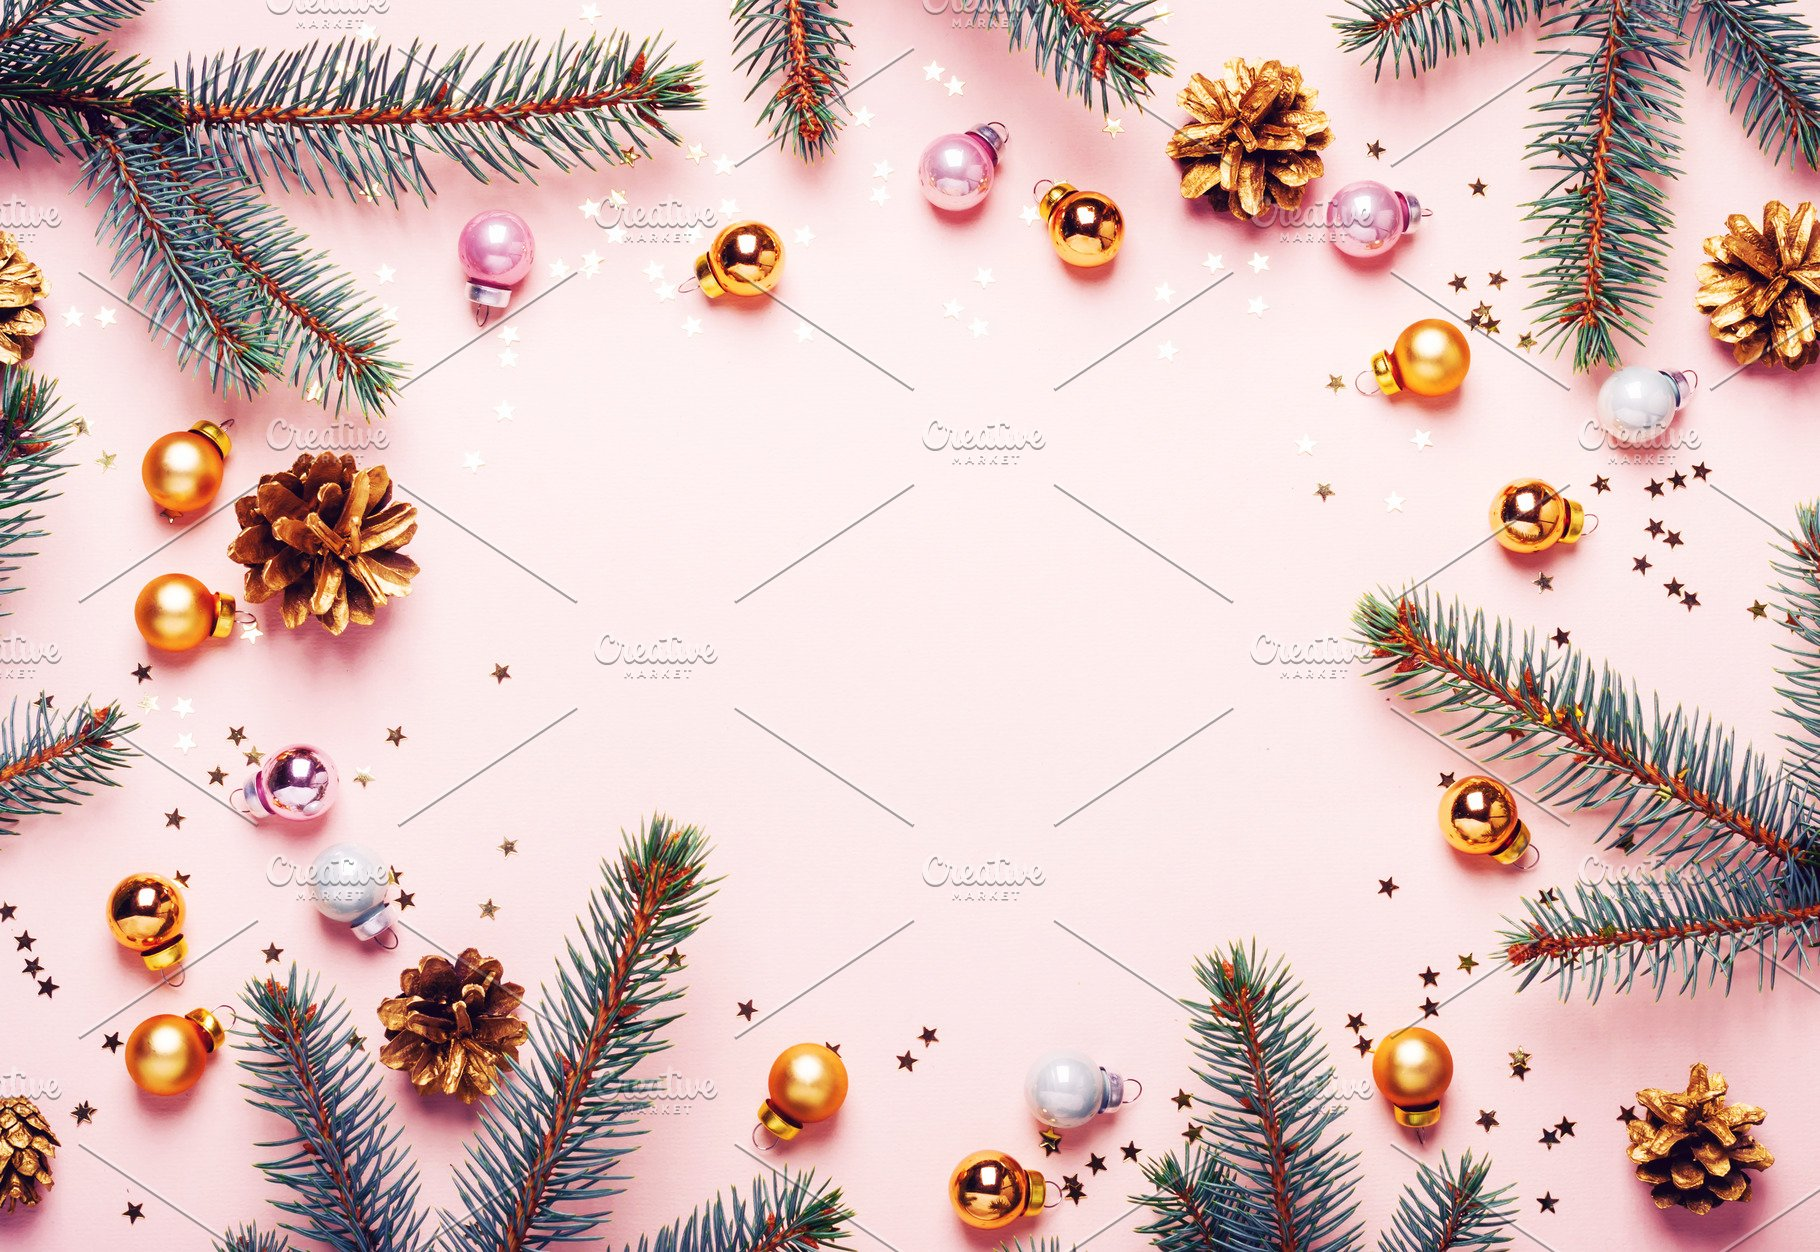 Pastel Pink Christmas Background Fe Holiday Photos Creative 1820x1252